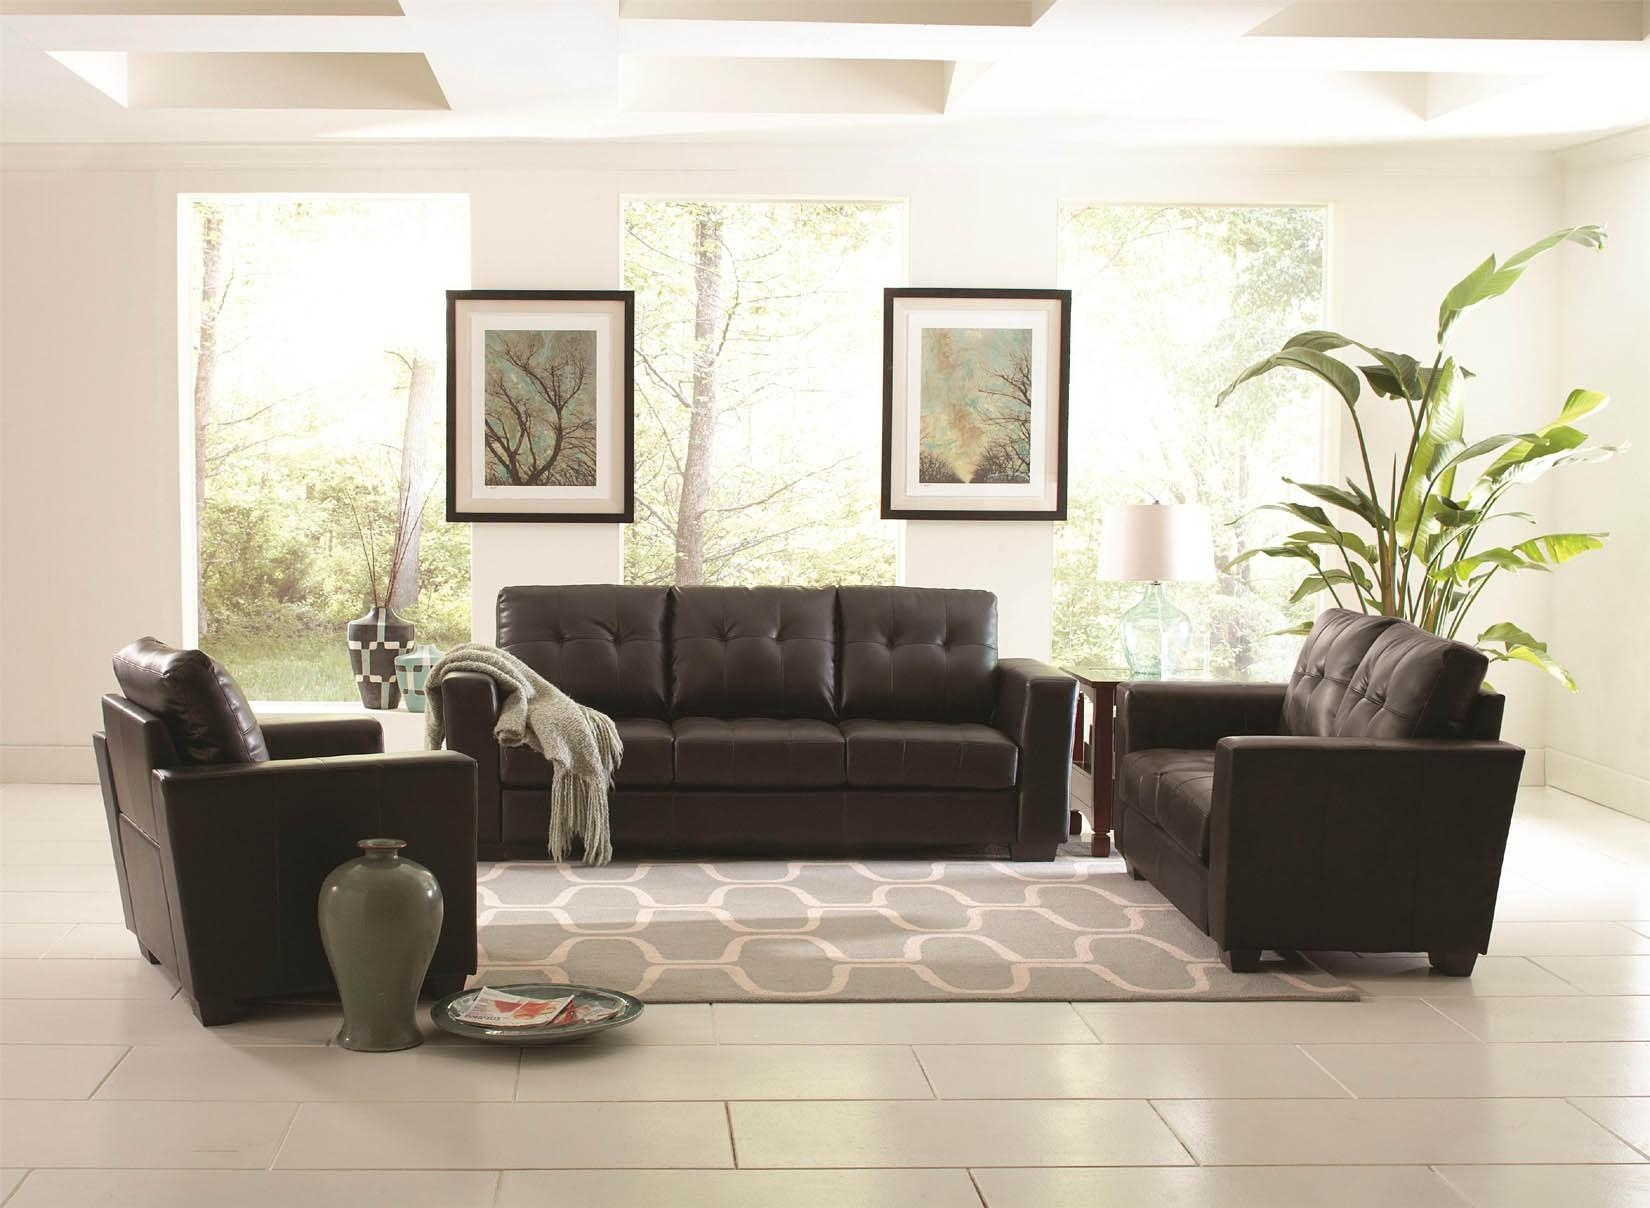 Black Sofa Decor 1000 Ideas About Sectional Sofas On Pinterest Big Intended For Black Sofas Decors (View 16 of 20)